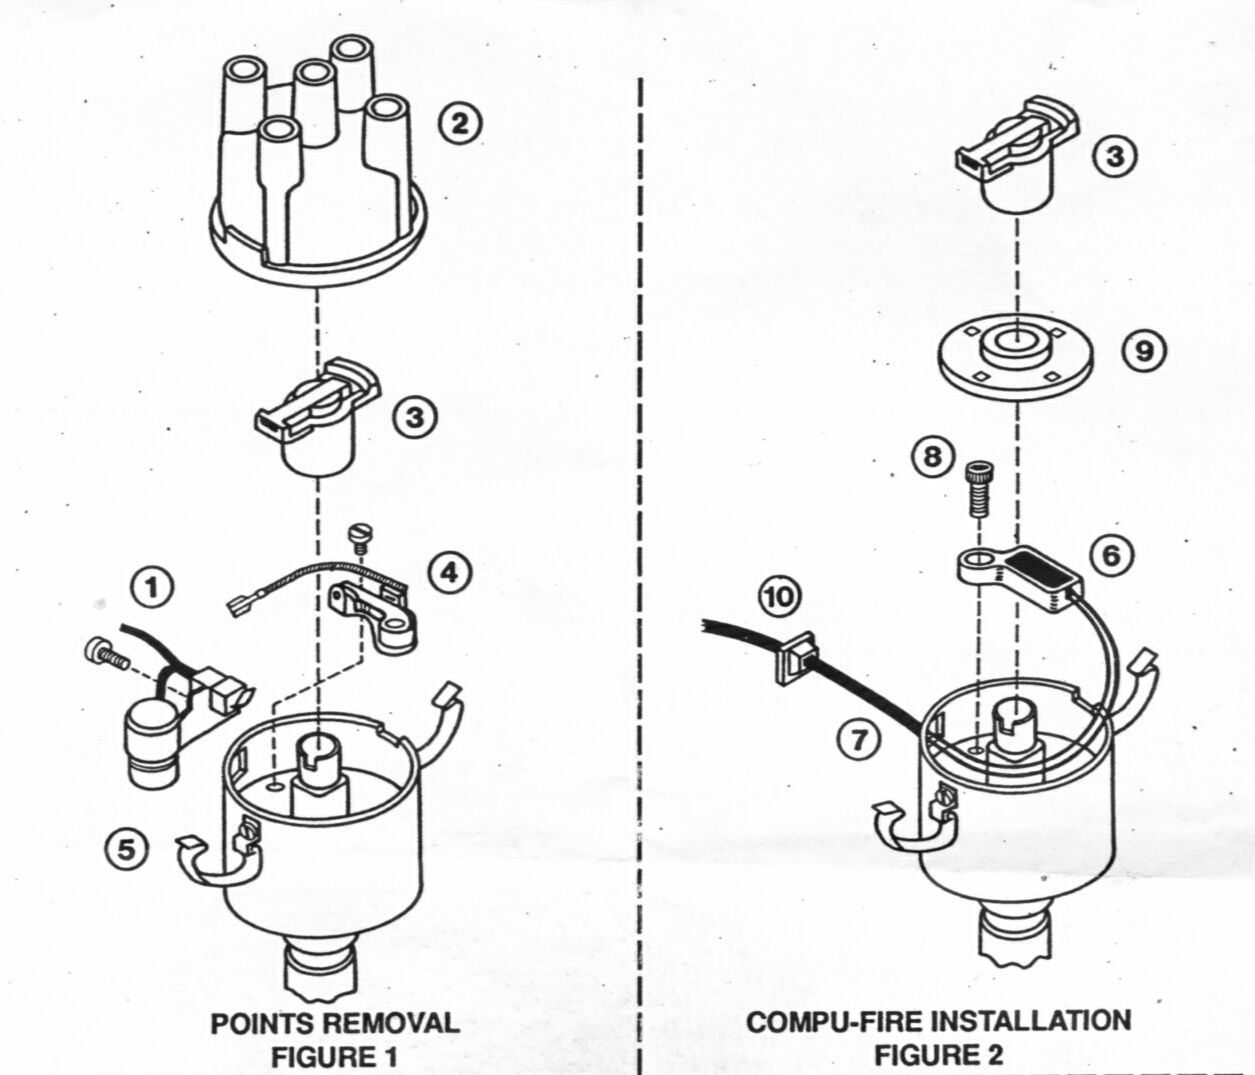 Vw Distributor Wiring Layout Diagrams Volkswagen Beetle Compufire Rh Resource Com 009 Golf 1